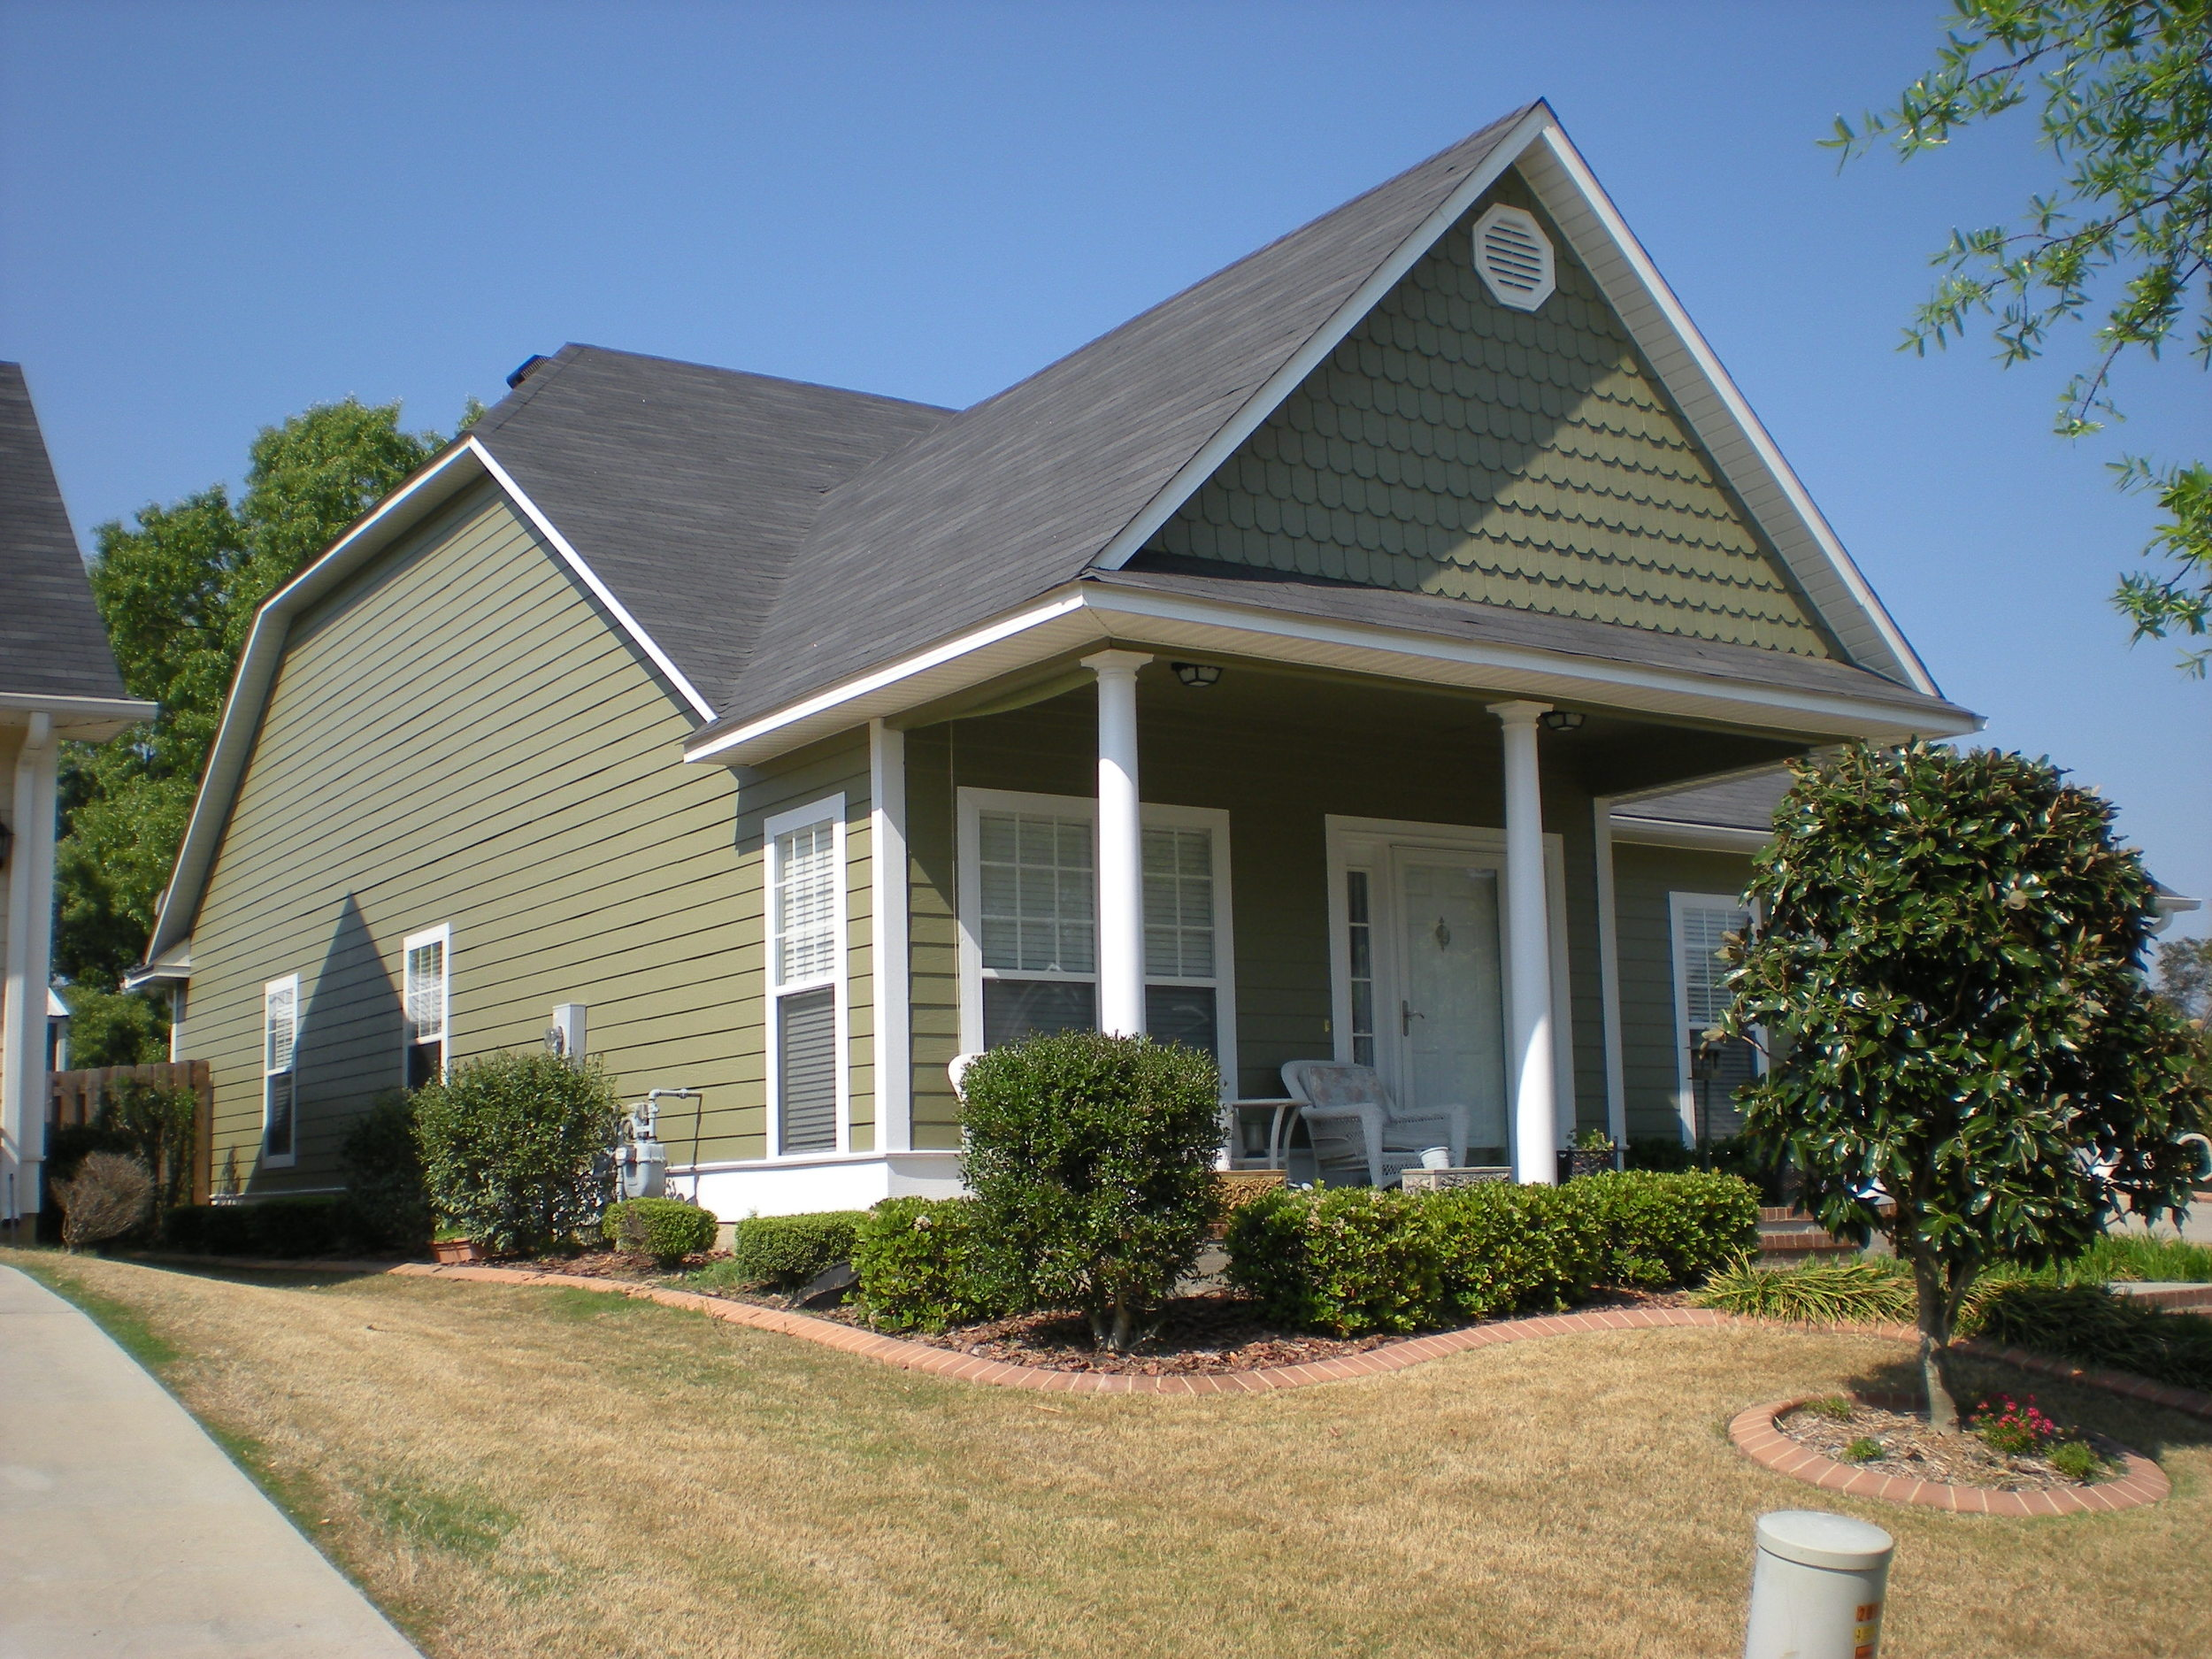 Exterior painting project of siding, trim, garage door, and shed.